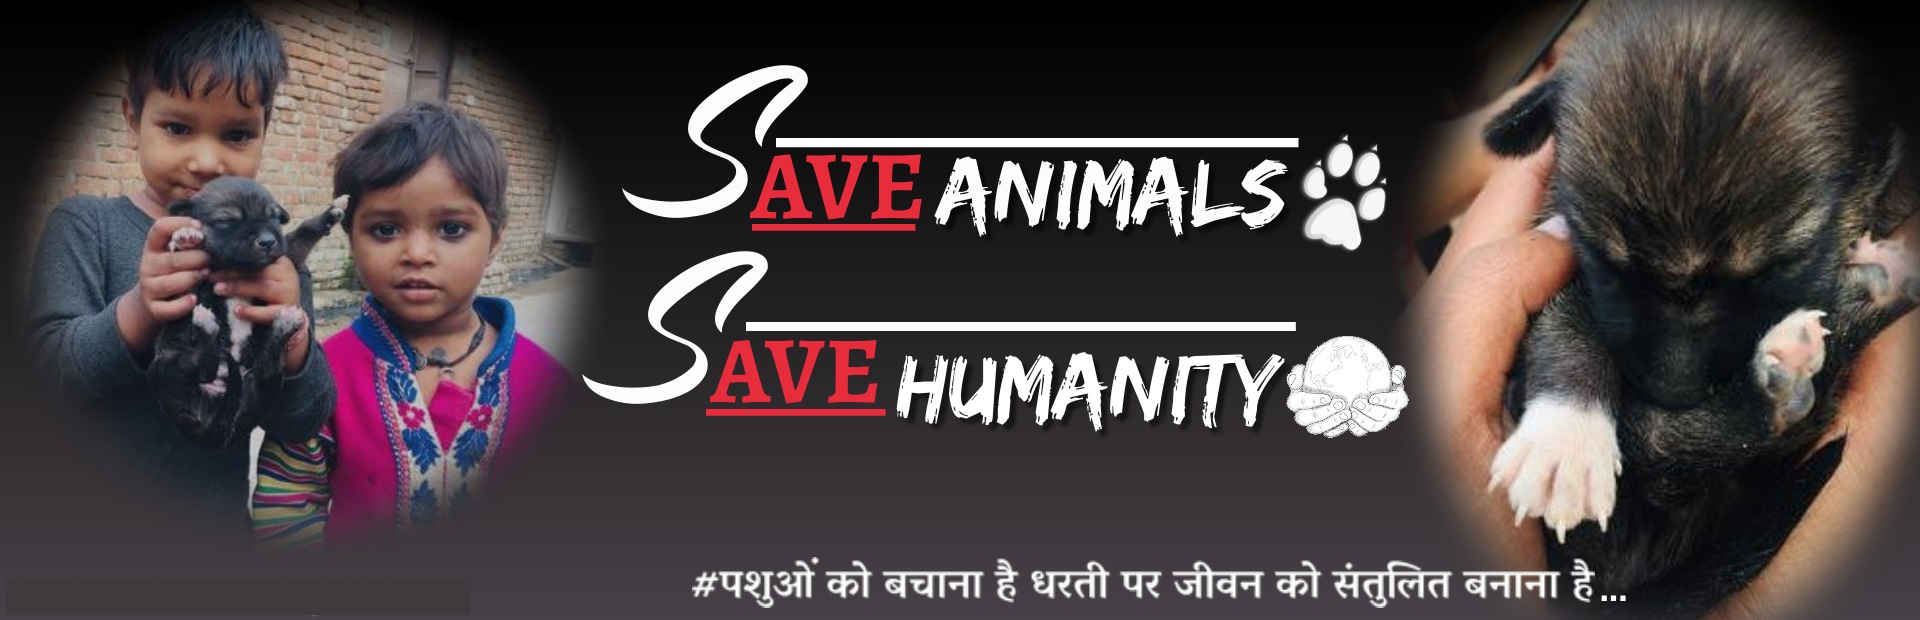 save_animals